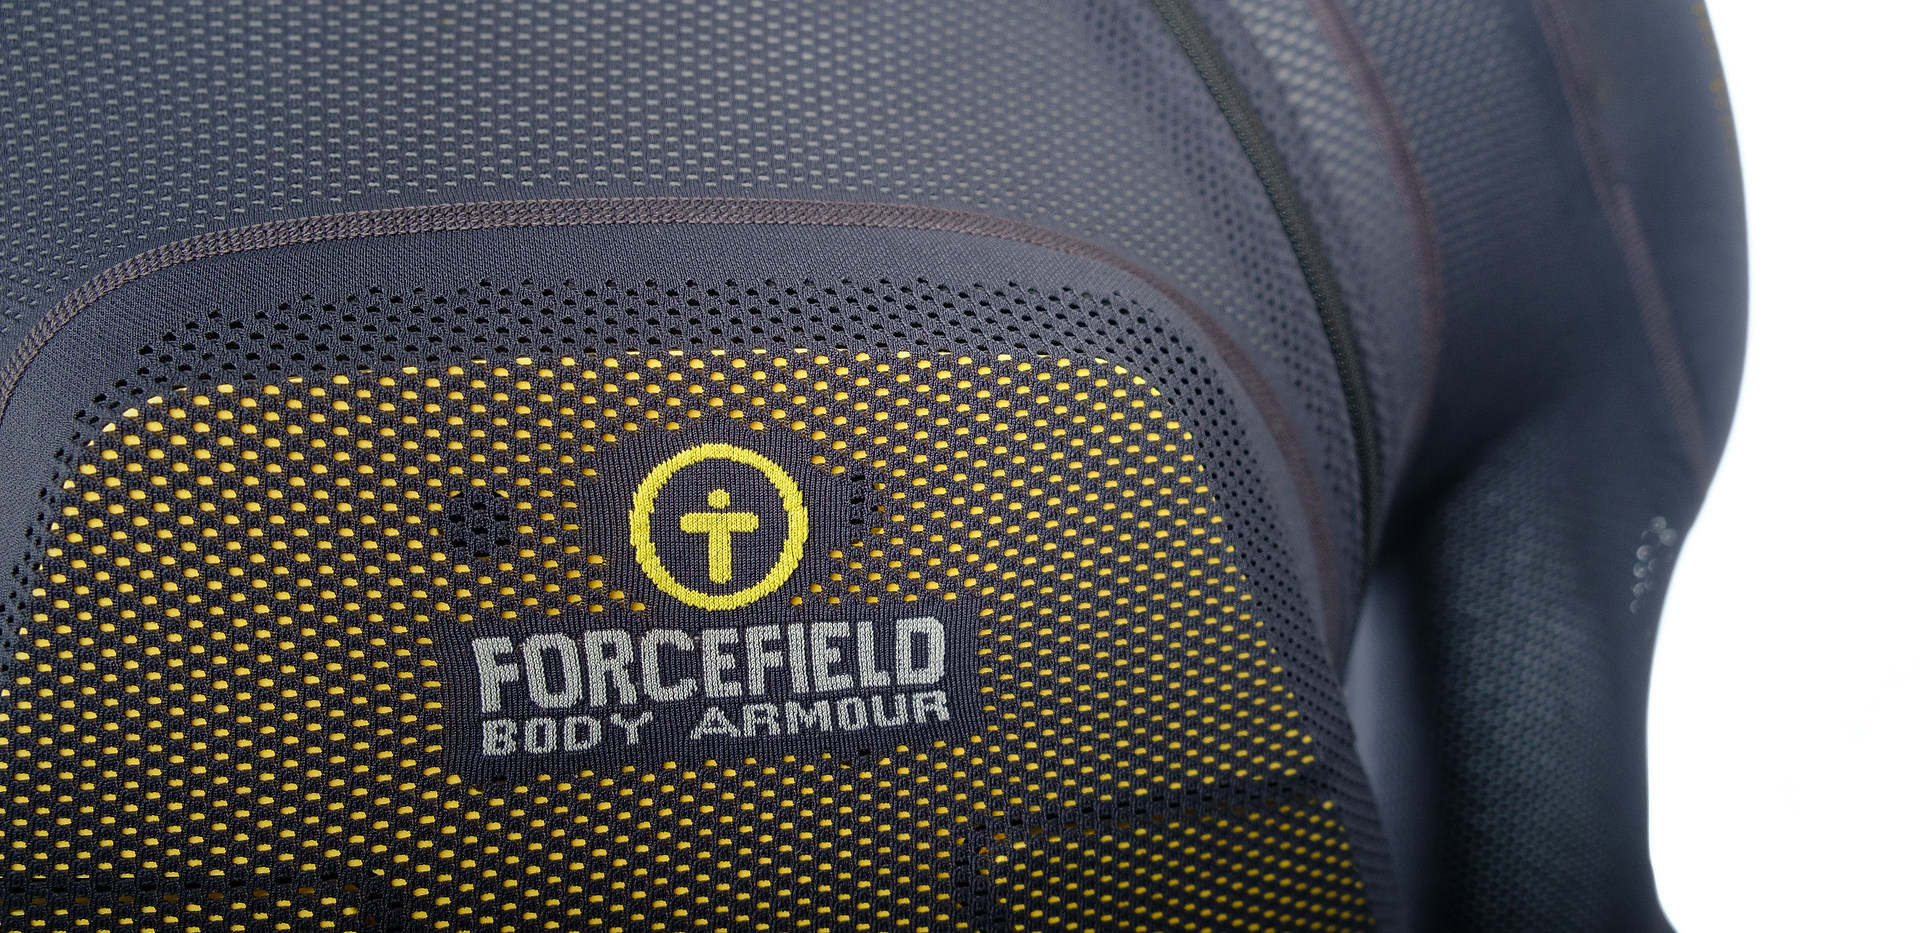 Forcefield Pro Shirt XV2 Air Chest Detail